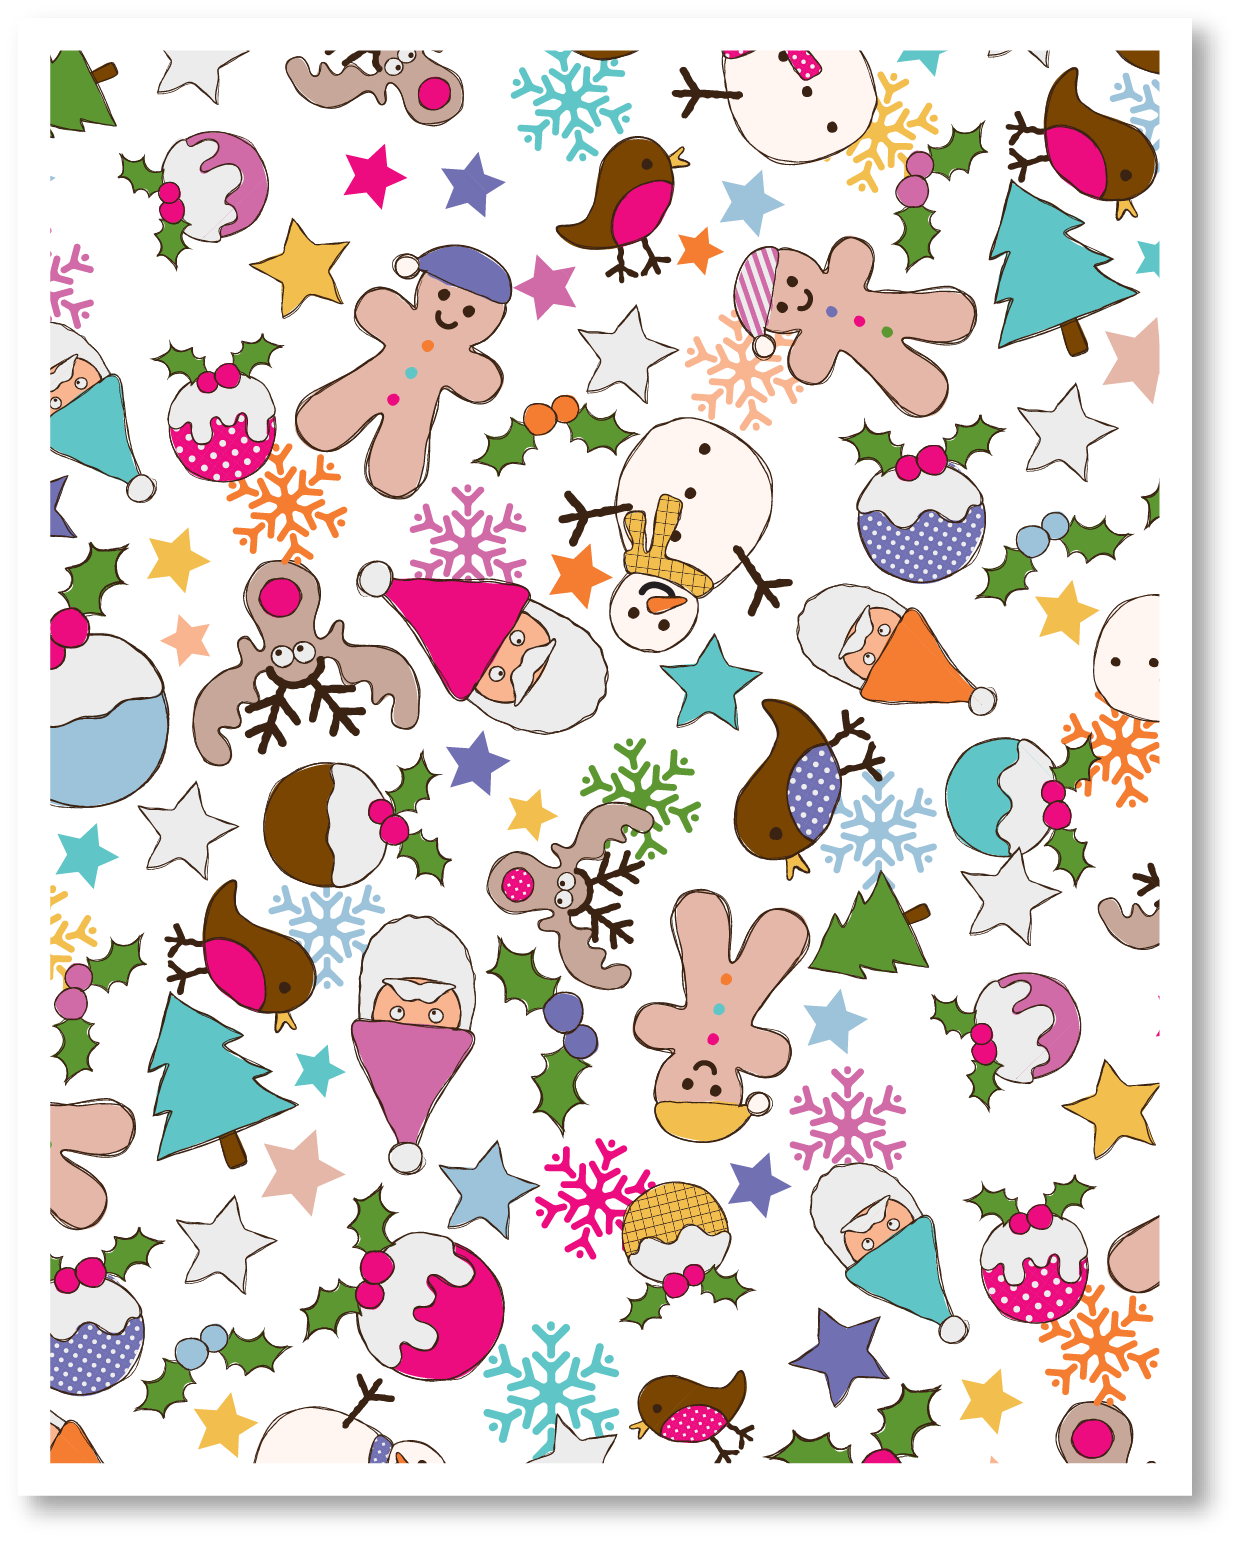 This is a photo of Geeky Christmas Printable Paper